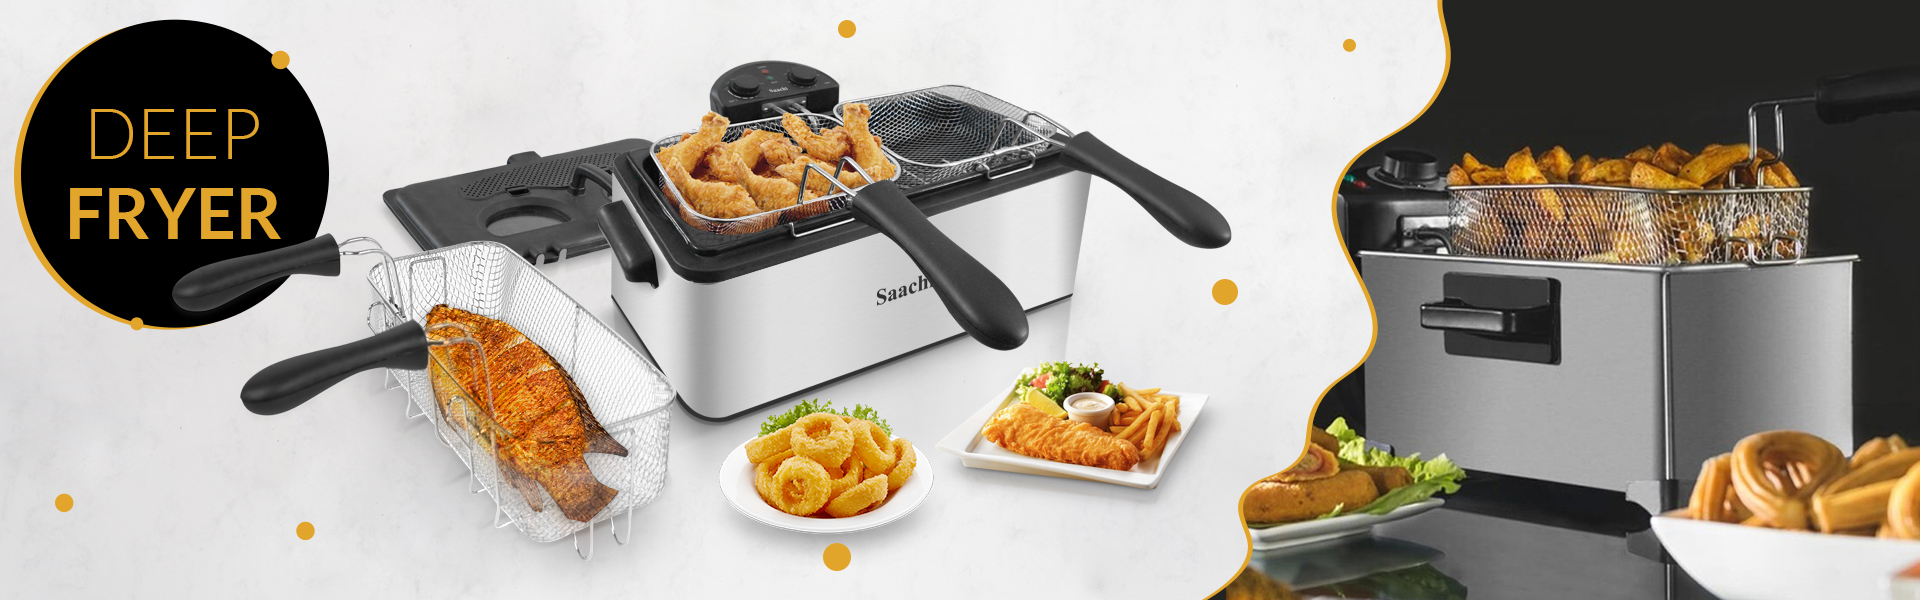 Deep fryer_1920x600